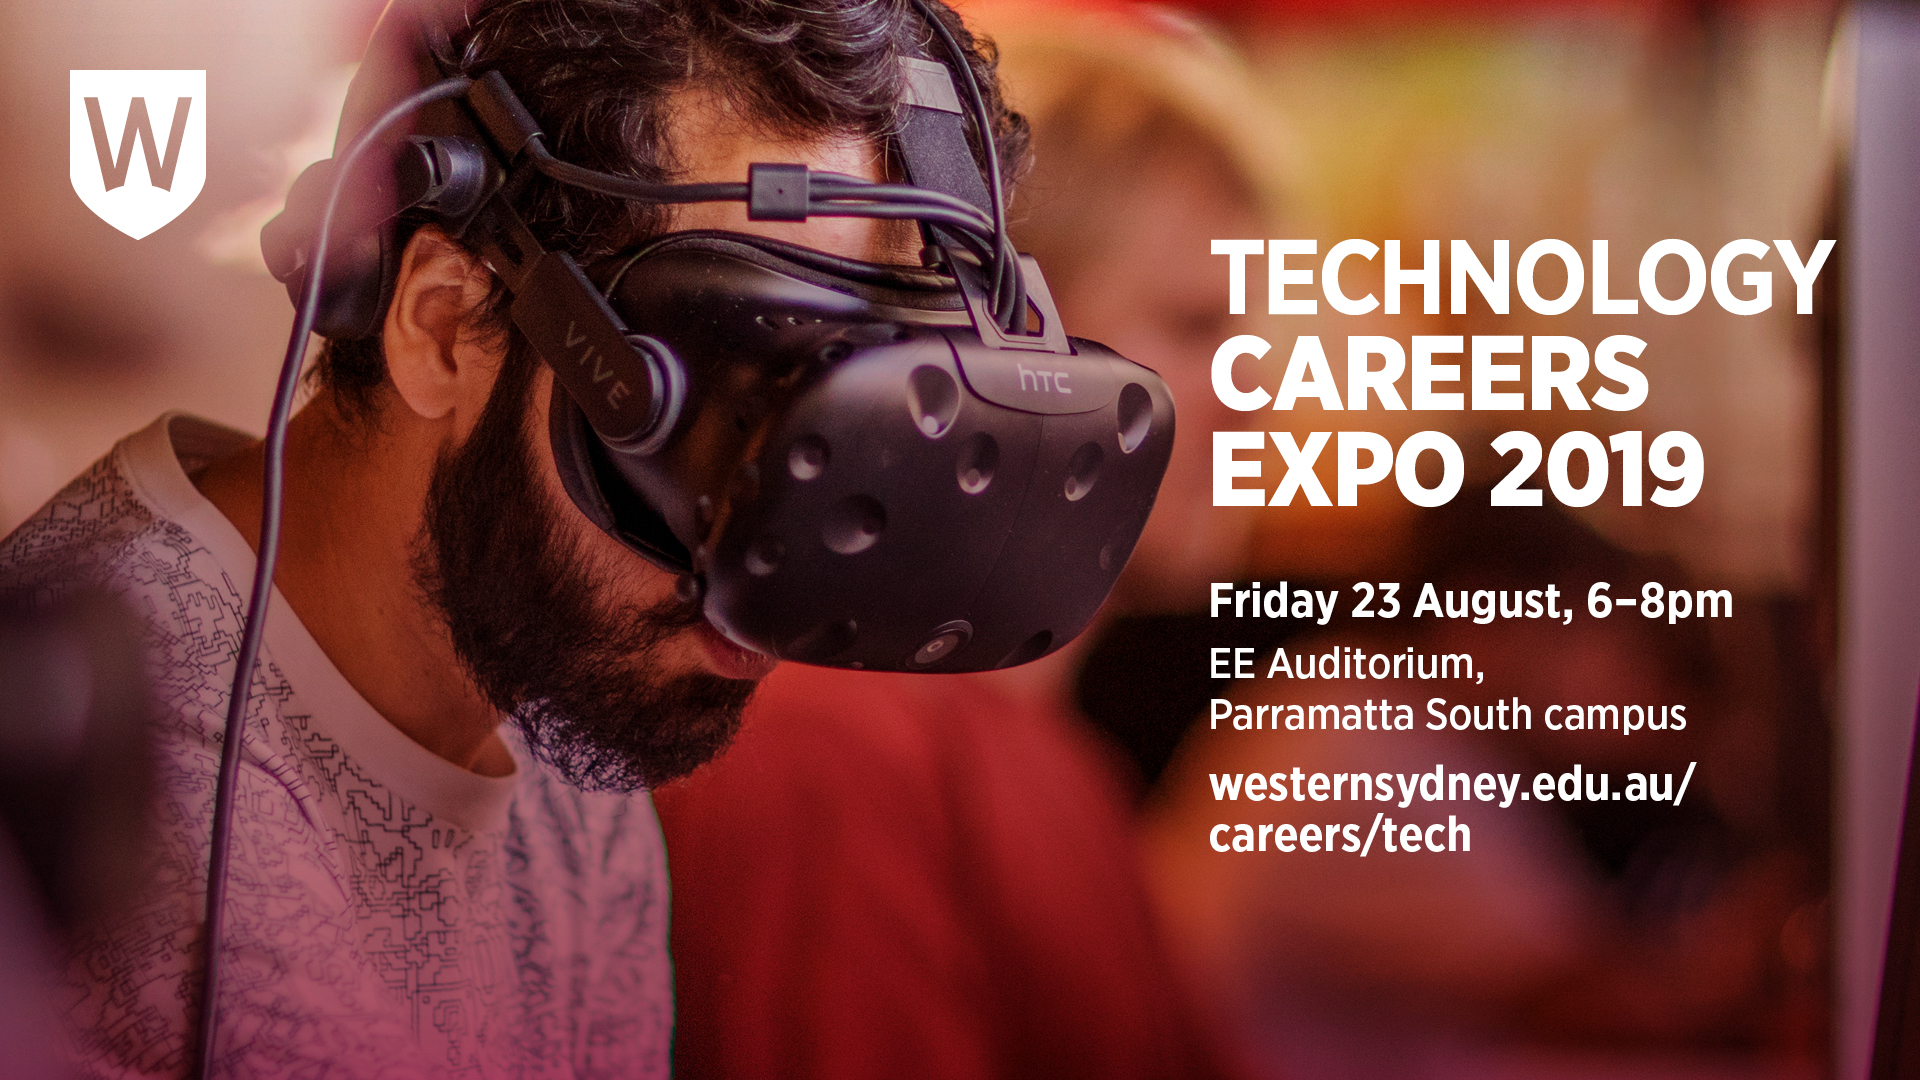 Technology Careers Expo